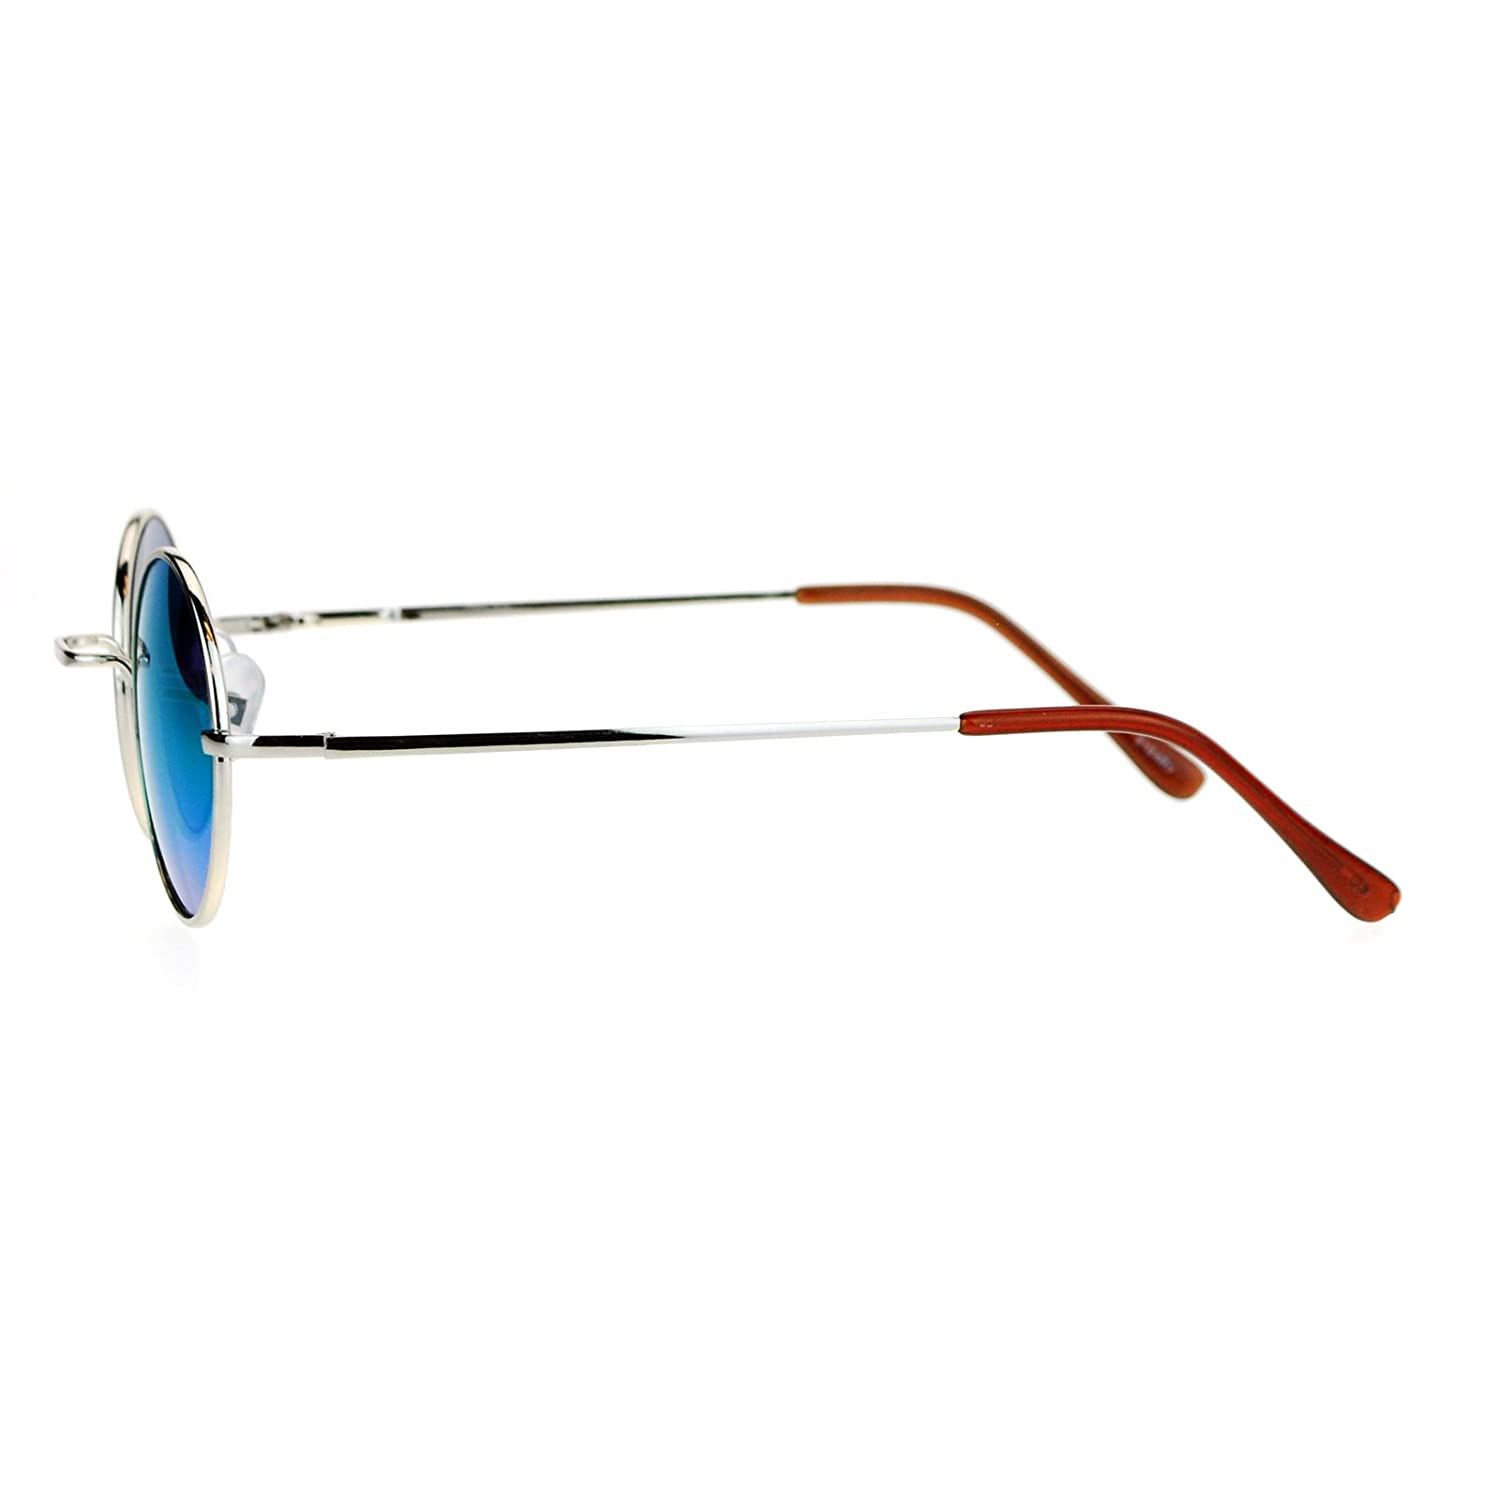 Small Round Circle Frame Sunglasses Metal Spring Hinge Mirror Lens